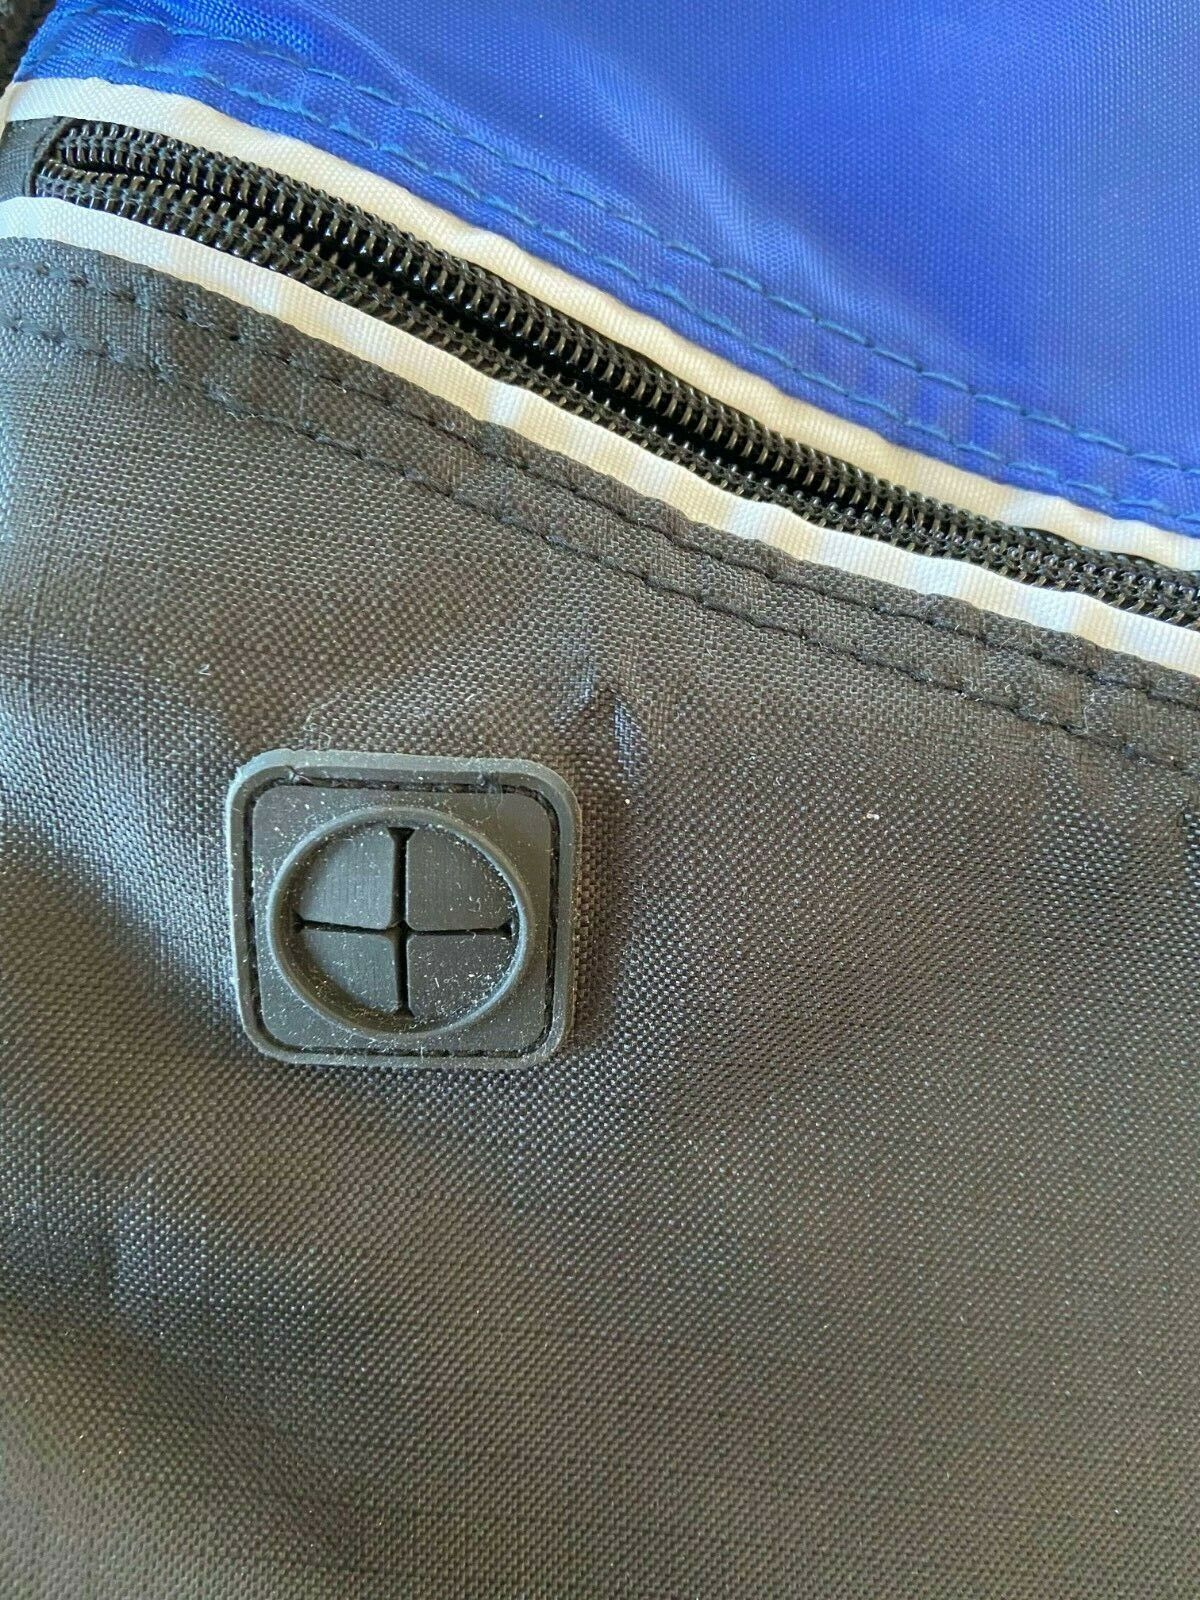 Apple Travel Bag Grey And Blue With Straps - $5.00